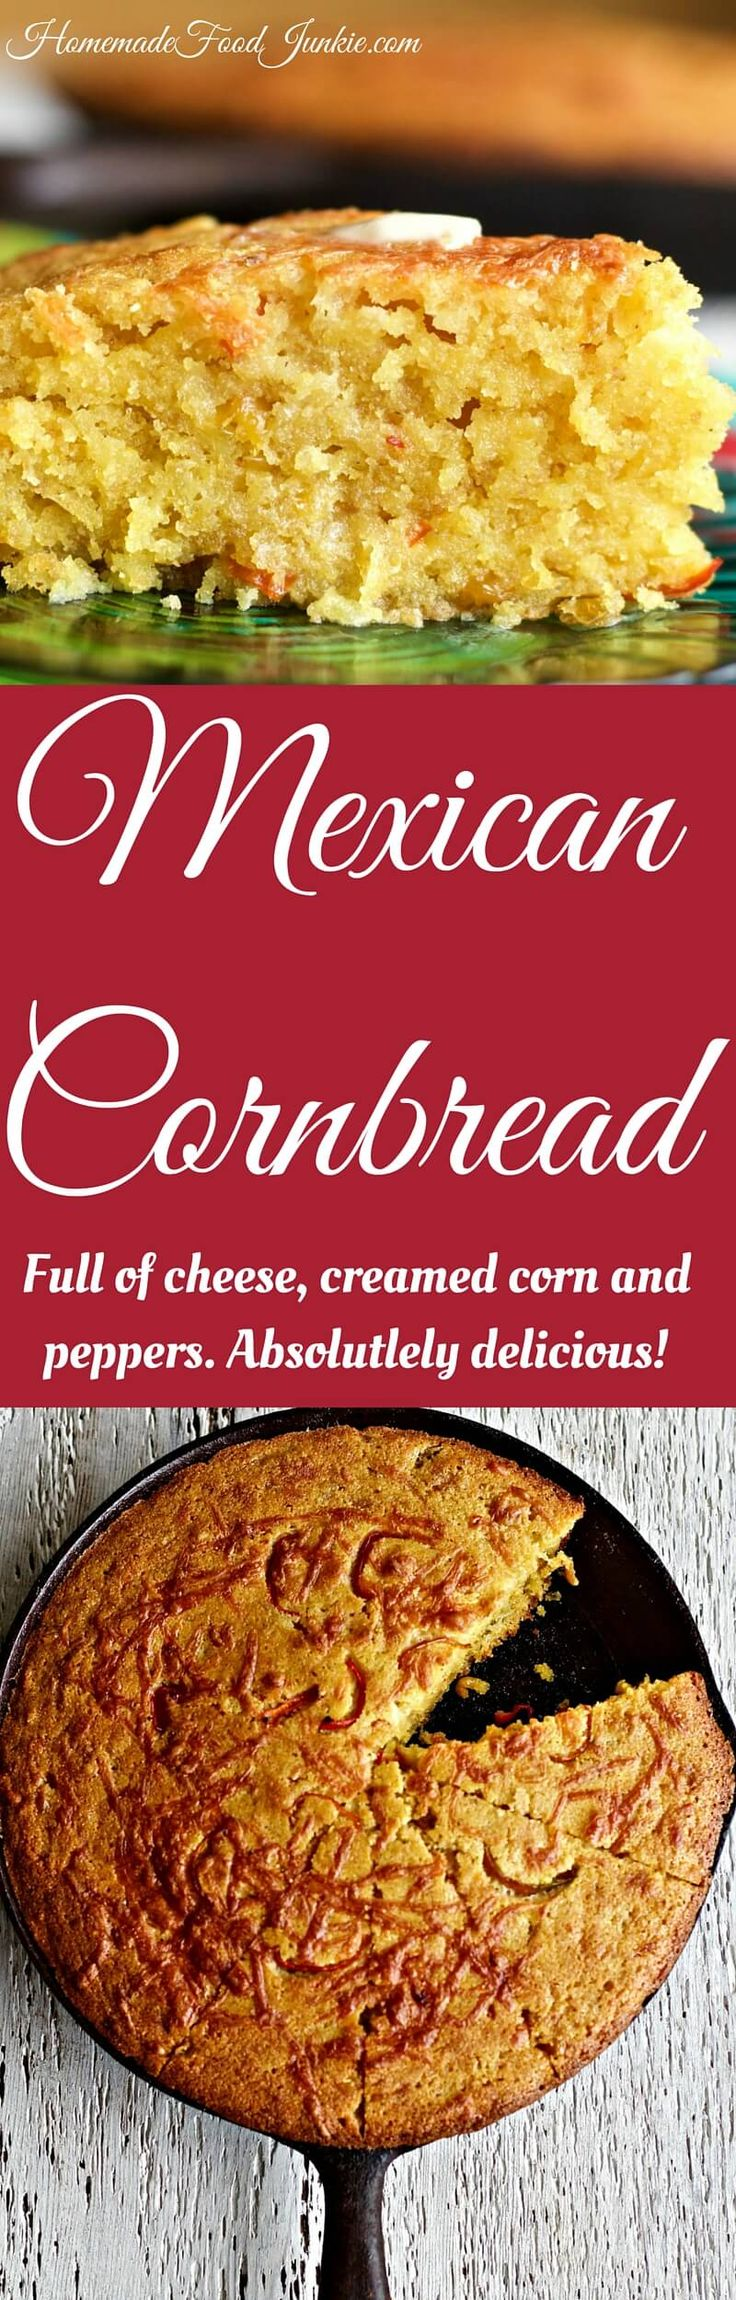 Mexican Cornbread by HomemadeFoodJunkie.com #cornbread #mexicancornbread  #cornbreadrecipes #sidedish